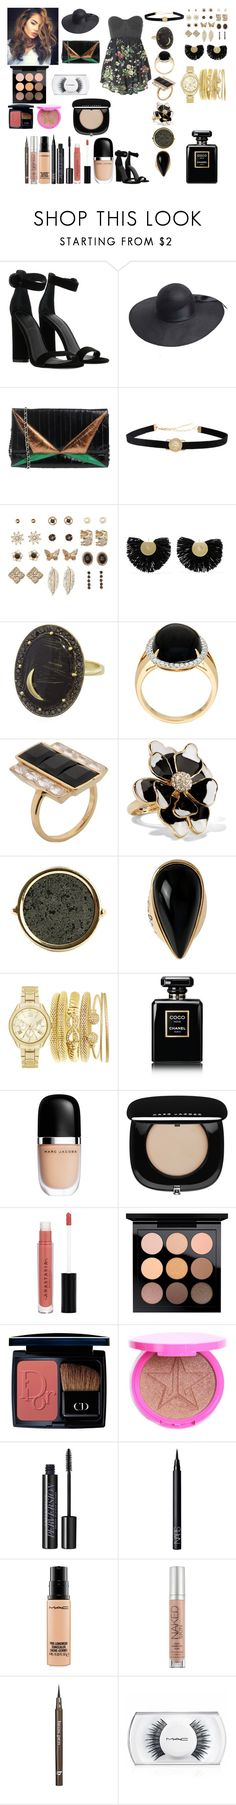 """Untitled #947"" by asiebenthaler ❤ liked on Polyvore featuring Kendall + Kylie, Essentiel, Charlotte Russe, Katerina Makriyianni, Andrea Fohrman, Kelly Wearstler, Kenneth Jay Lane, Ginette NY, Diane Von Furstenberg and Chanel"